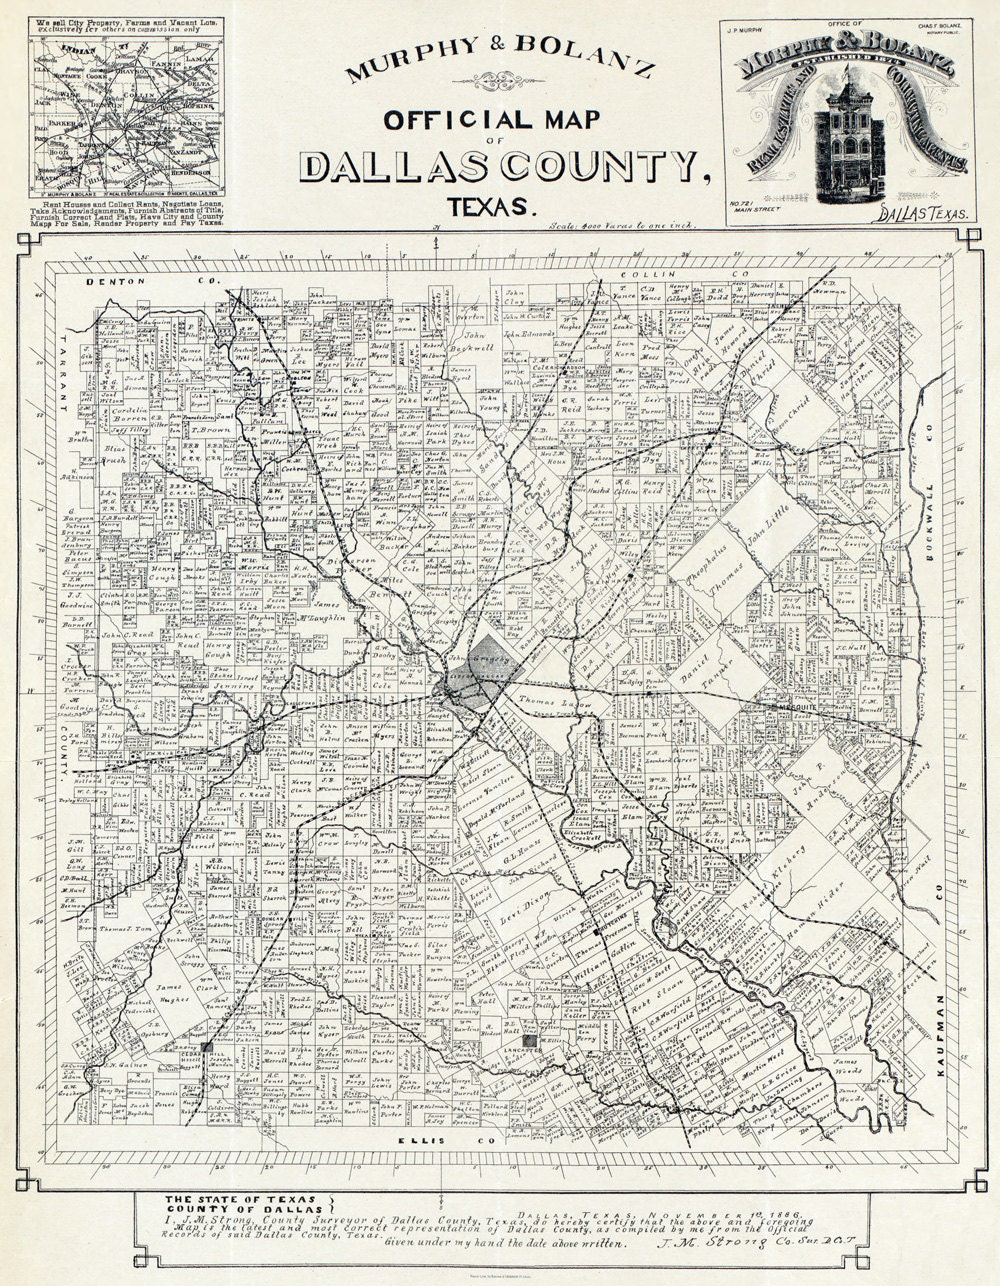 A Guide to the History of Dallas  Texas  Maps also Trails in Dallas County   Katy Trail as well 2018 Best Places to Live in Dallas County  TX   Niche further North Texas Counties Map   Business Ideas 2013 besides A Guide to the History of Dallas  Texas  Maps moreover Lake Highlands Area Improvement ociation  LHAIA   LOVELAND besides Dallas Metro Weighs Unusual Transit Options – Next City additionally Dallas County Area Code Map – stumbleweb info furthermore A Map Of Dallas Texas Best Dallas County Texas   Maps Reference together with 1886 Map of Dallas County Texas   Etsy further Category Maps of Dallas County  Texas   Wikimedia  mons likewise Best Places to Live in Dallas County  Texas furthermore map old photos of dallas   Google Search   Dallas in 2018 together with  also TAC   About Texas Counties   Functions of County Government besides Map of Dallas County  Texas   Vicinity  circa 1860   Historic Maps. on map of dallas county texas